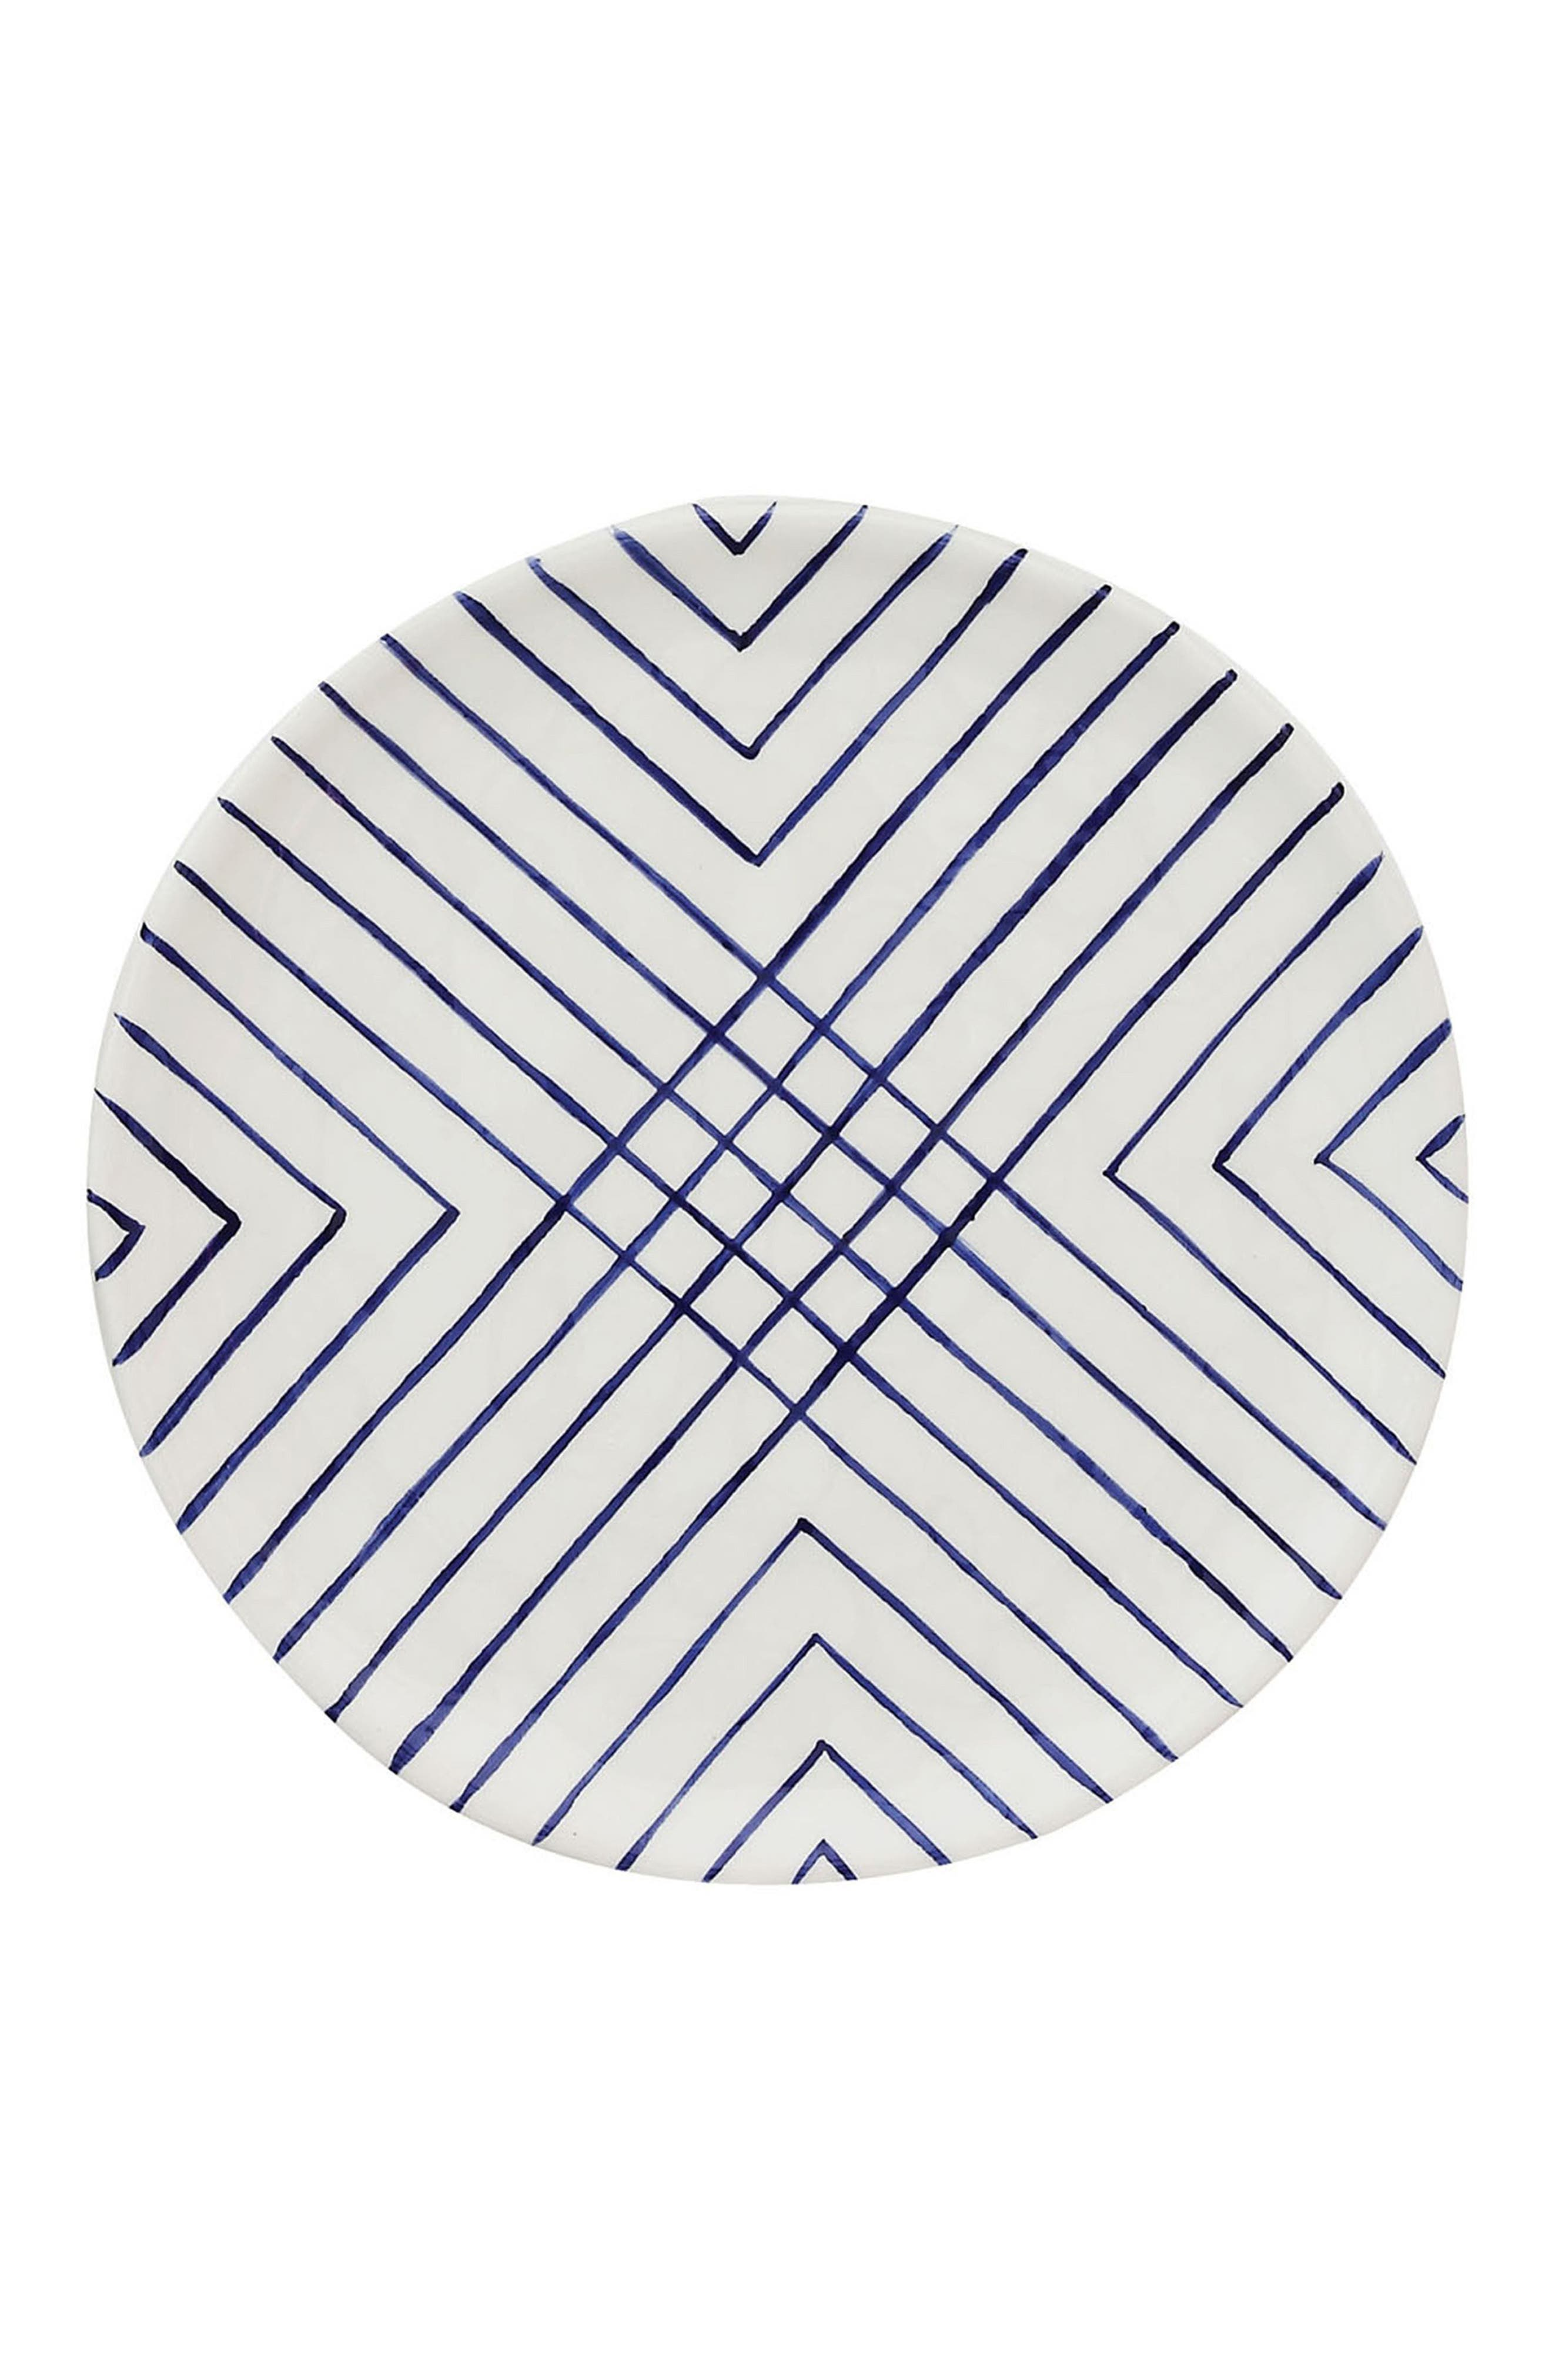 Alternate Image 1 Selected - Creative Co-Op Blue & White Plate